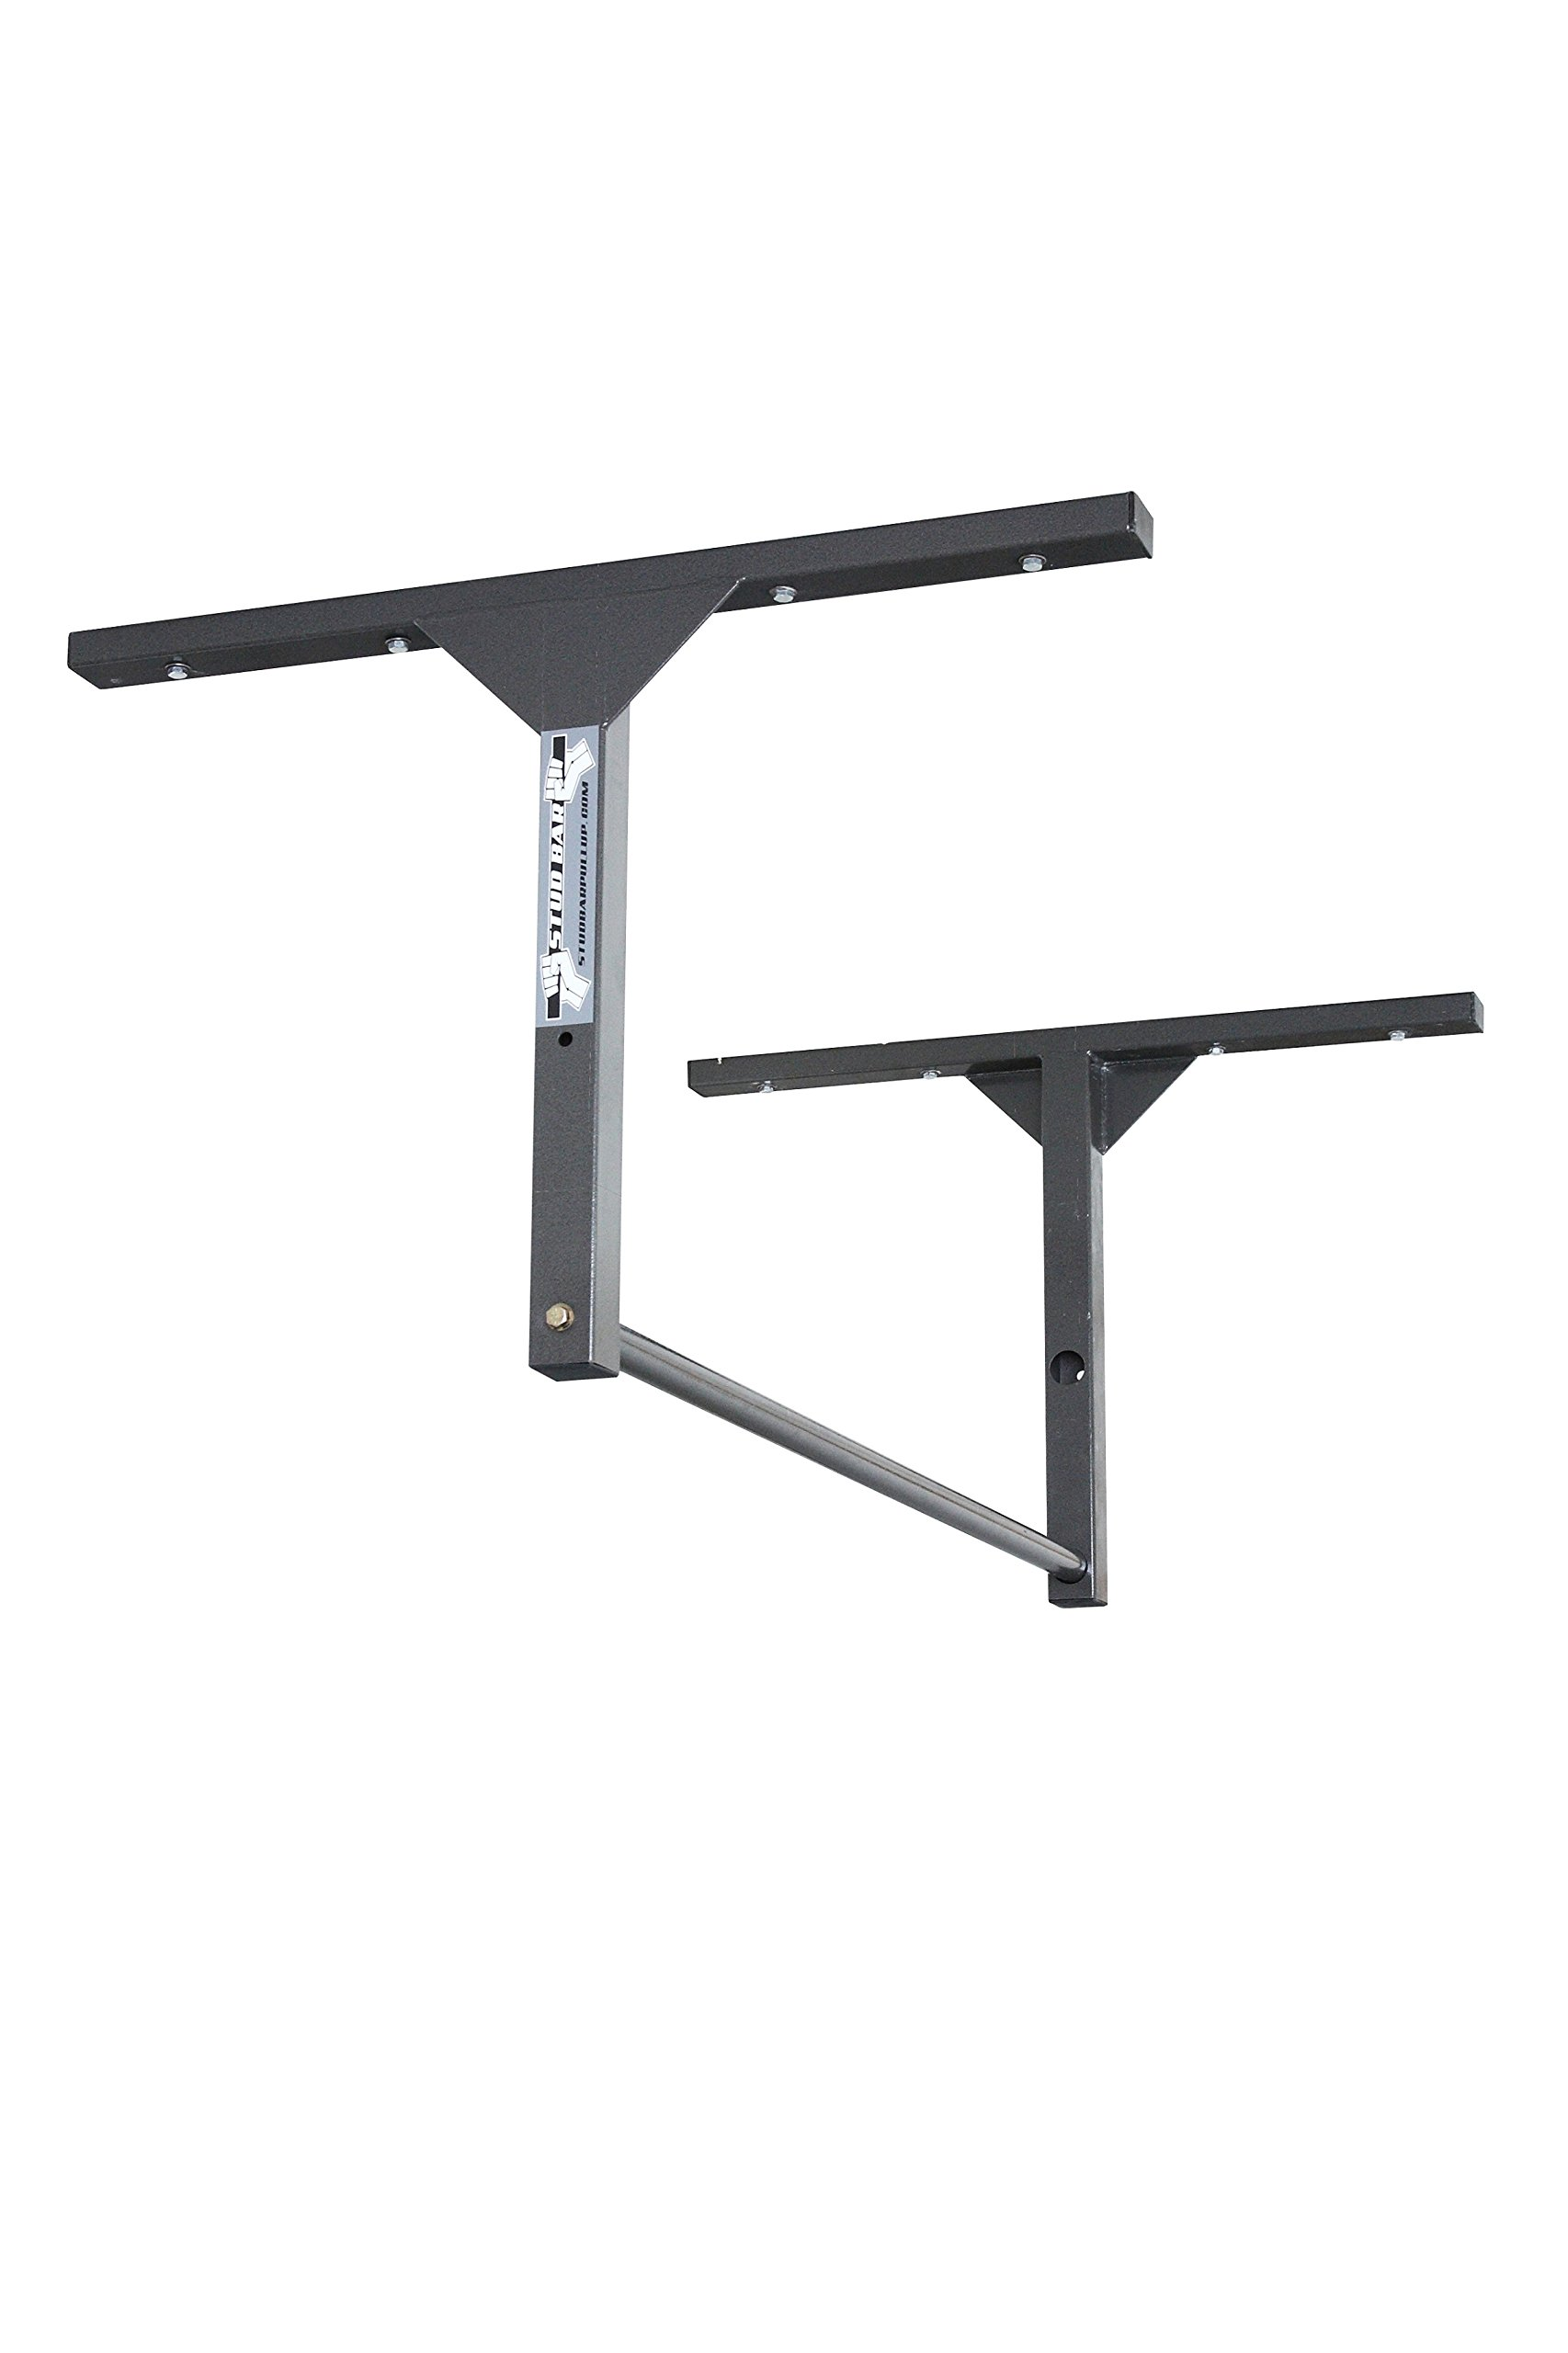 bar up outdoor youtube watch diy premium pullup door pull frame extreme